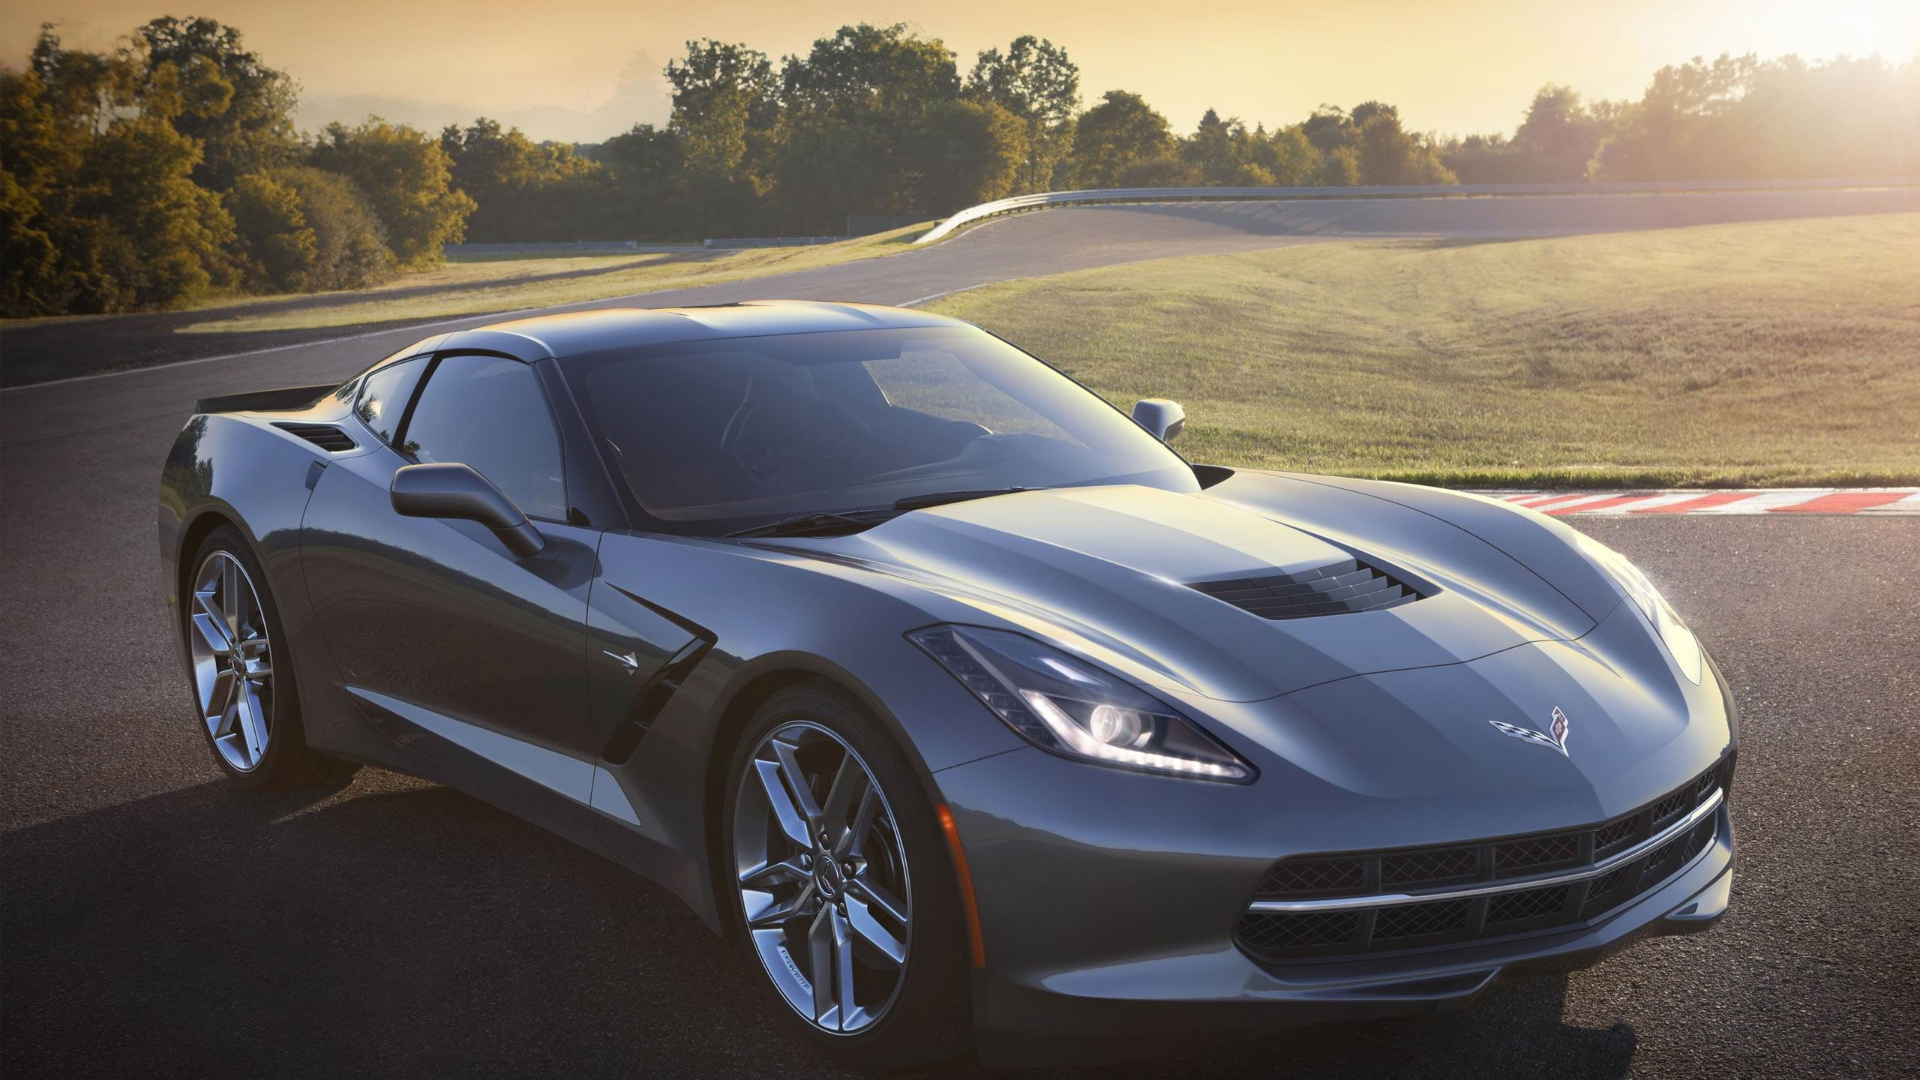 Silver Corvette Wallpapers